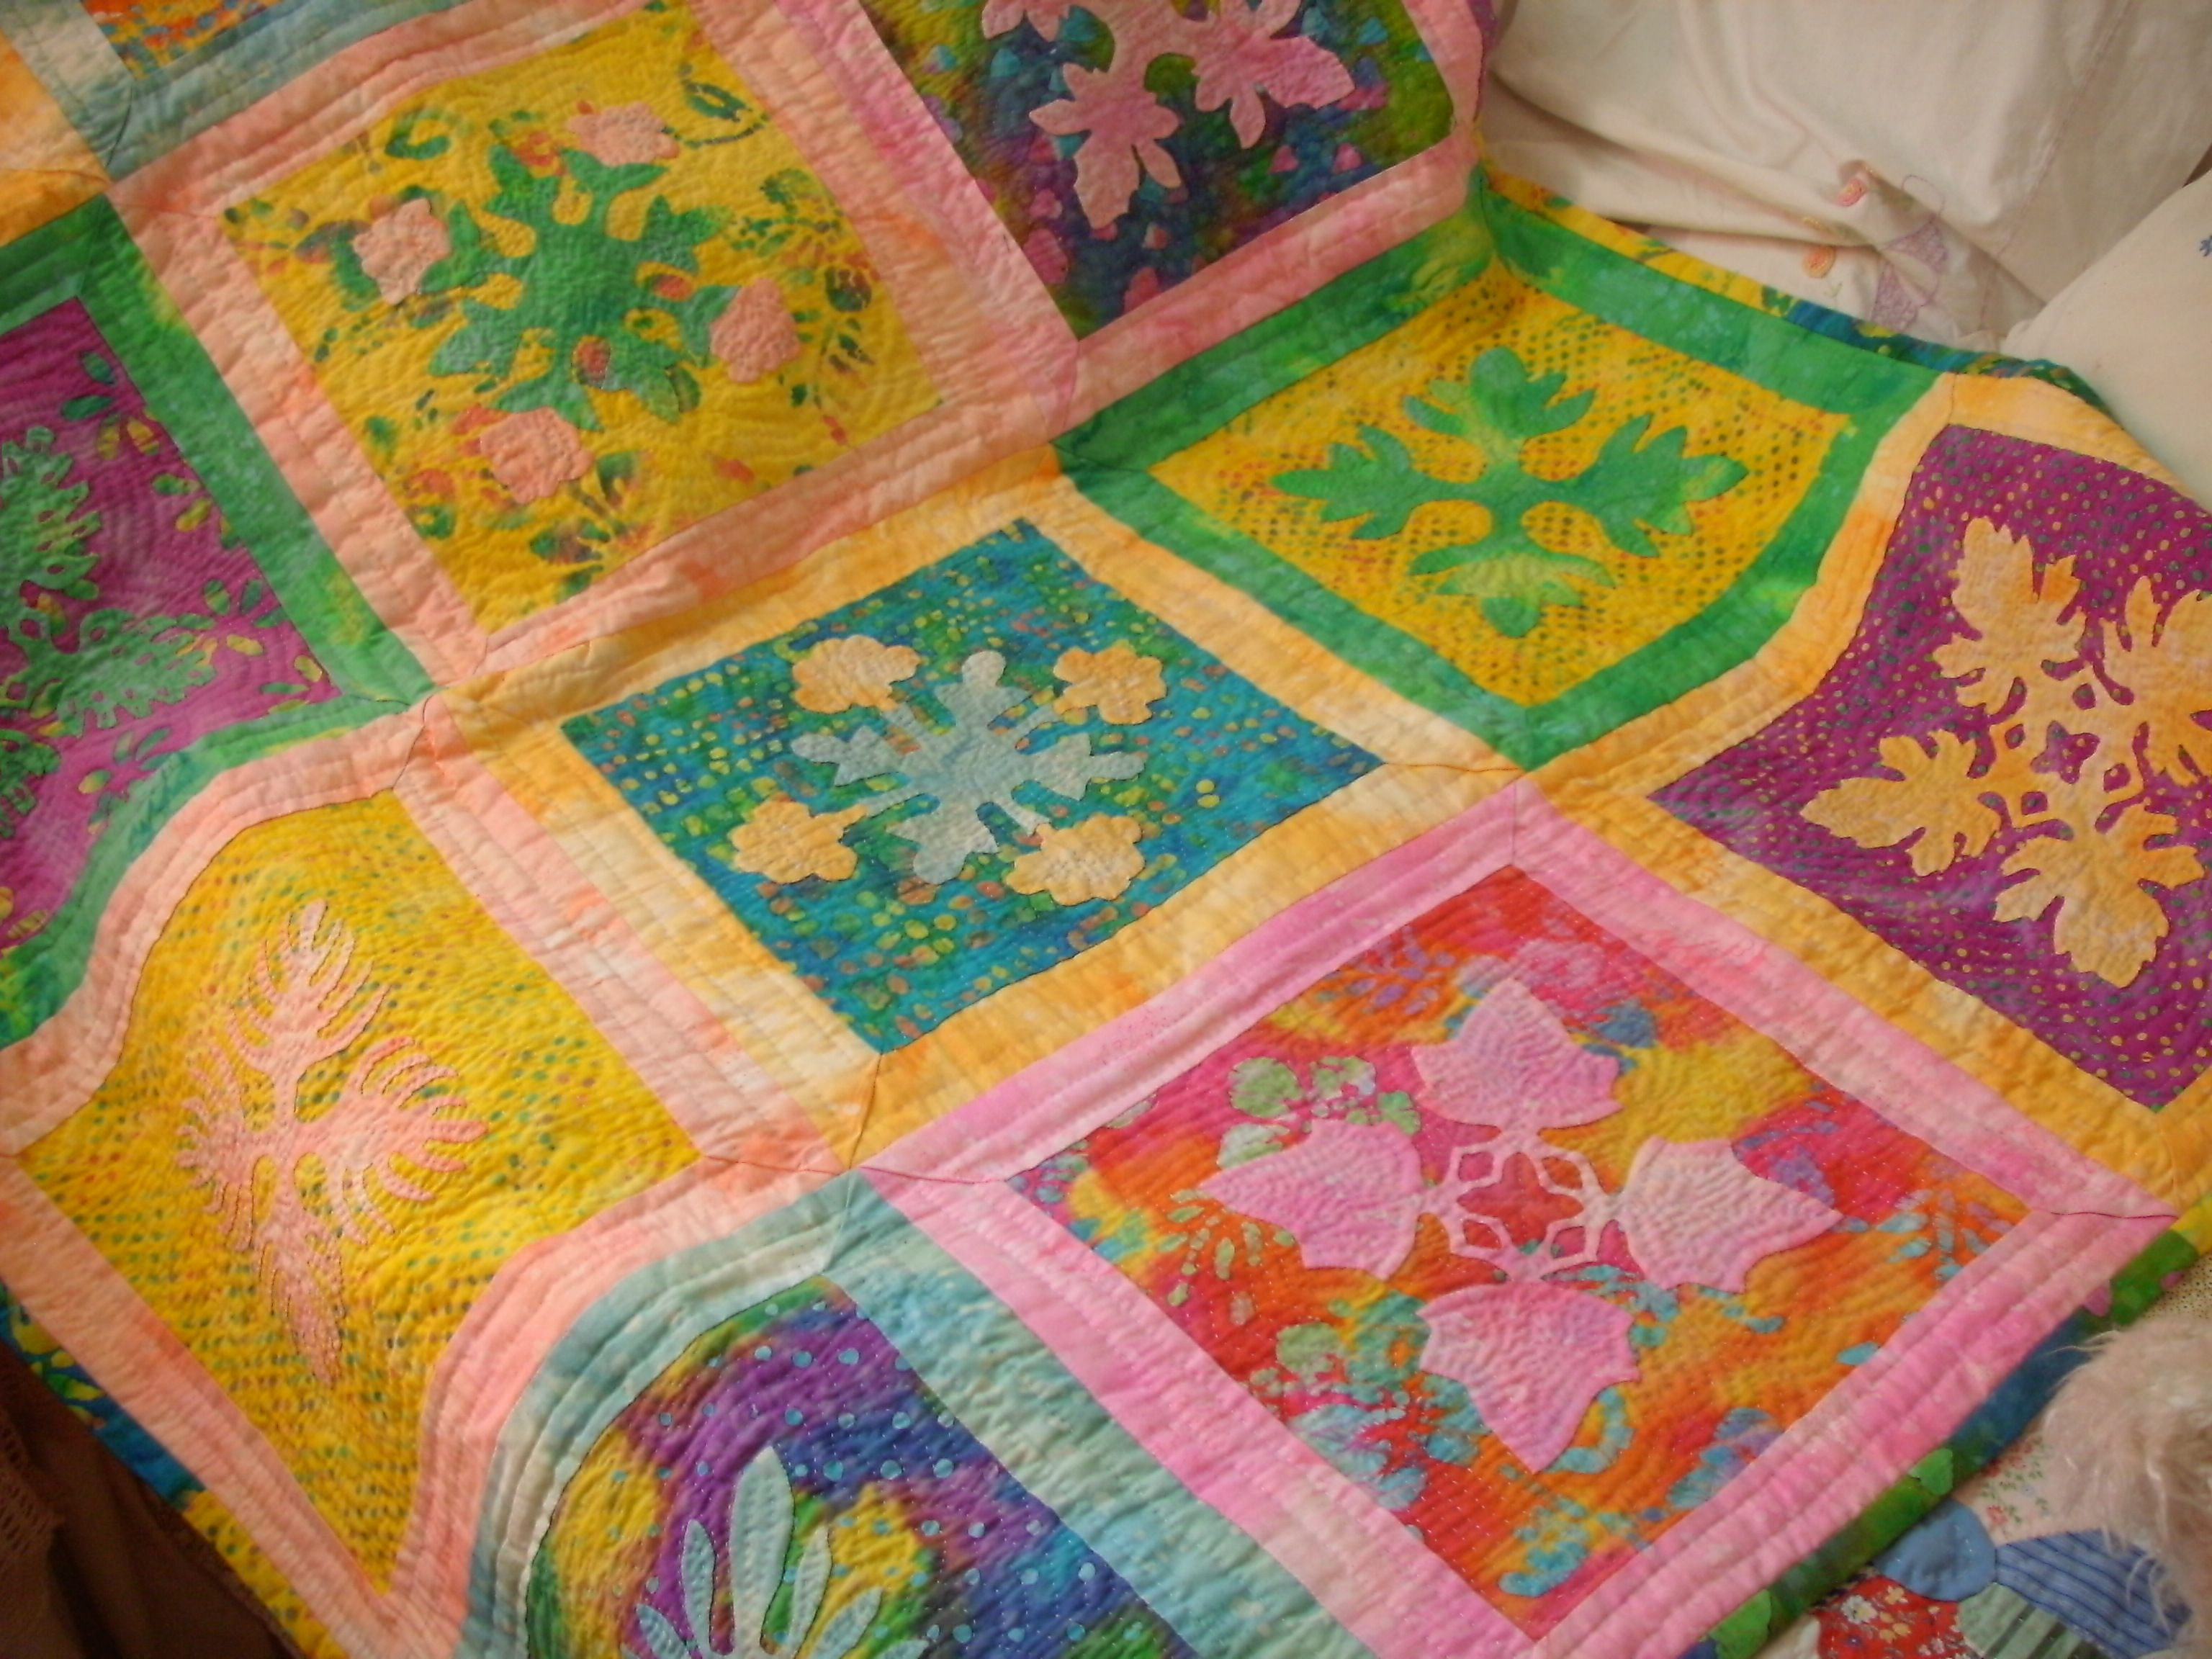 An Hawaiian quilt using smaller blocks than usual.  I did it in all the hand applique and hand quilting one block at a time, joining them the Georgia Bonesteel way.  I used the Elizabeth Root book, 'The Pillows to Patch Quilt Collection'.